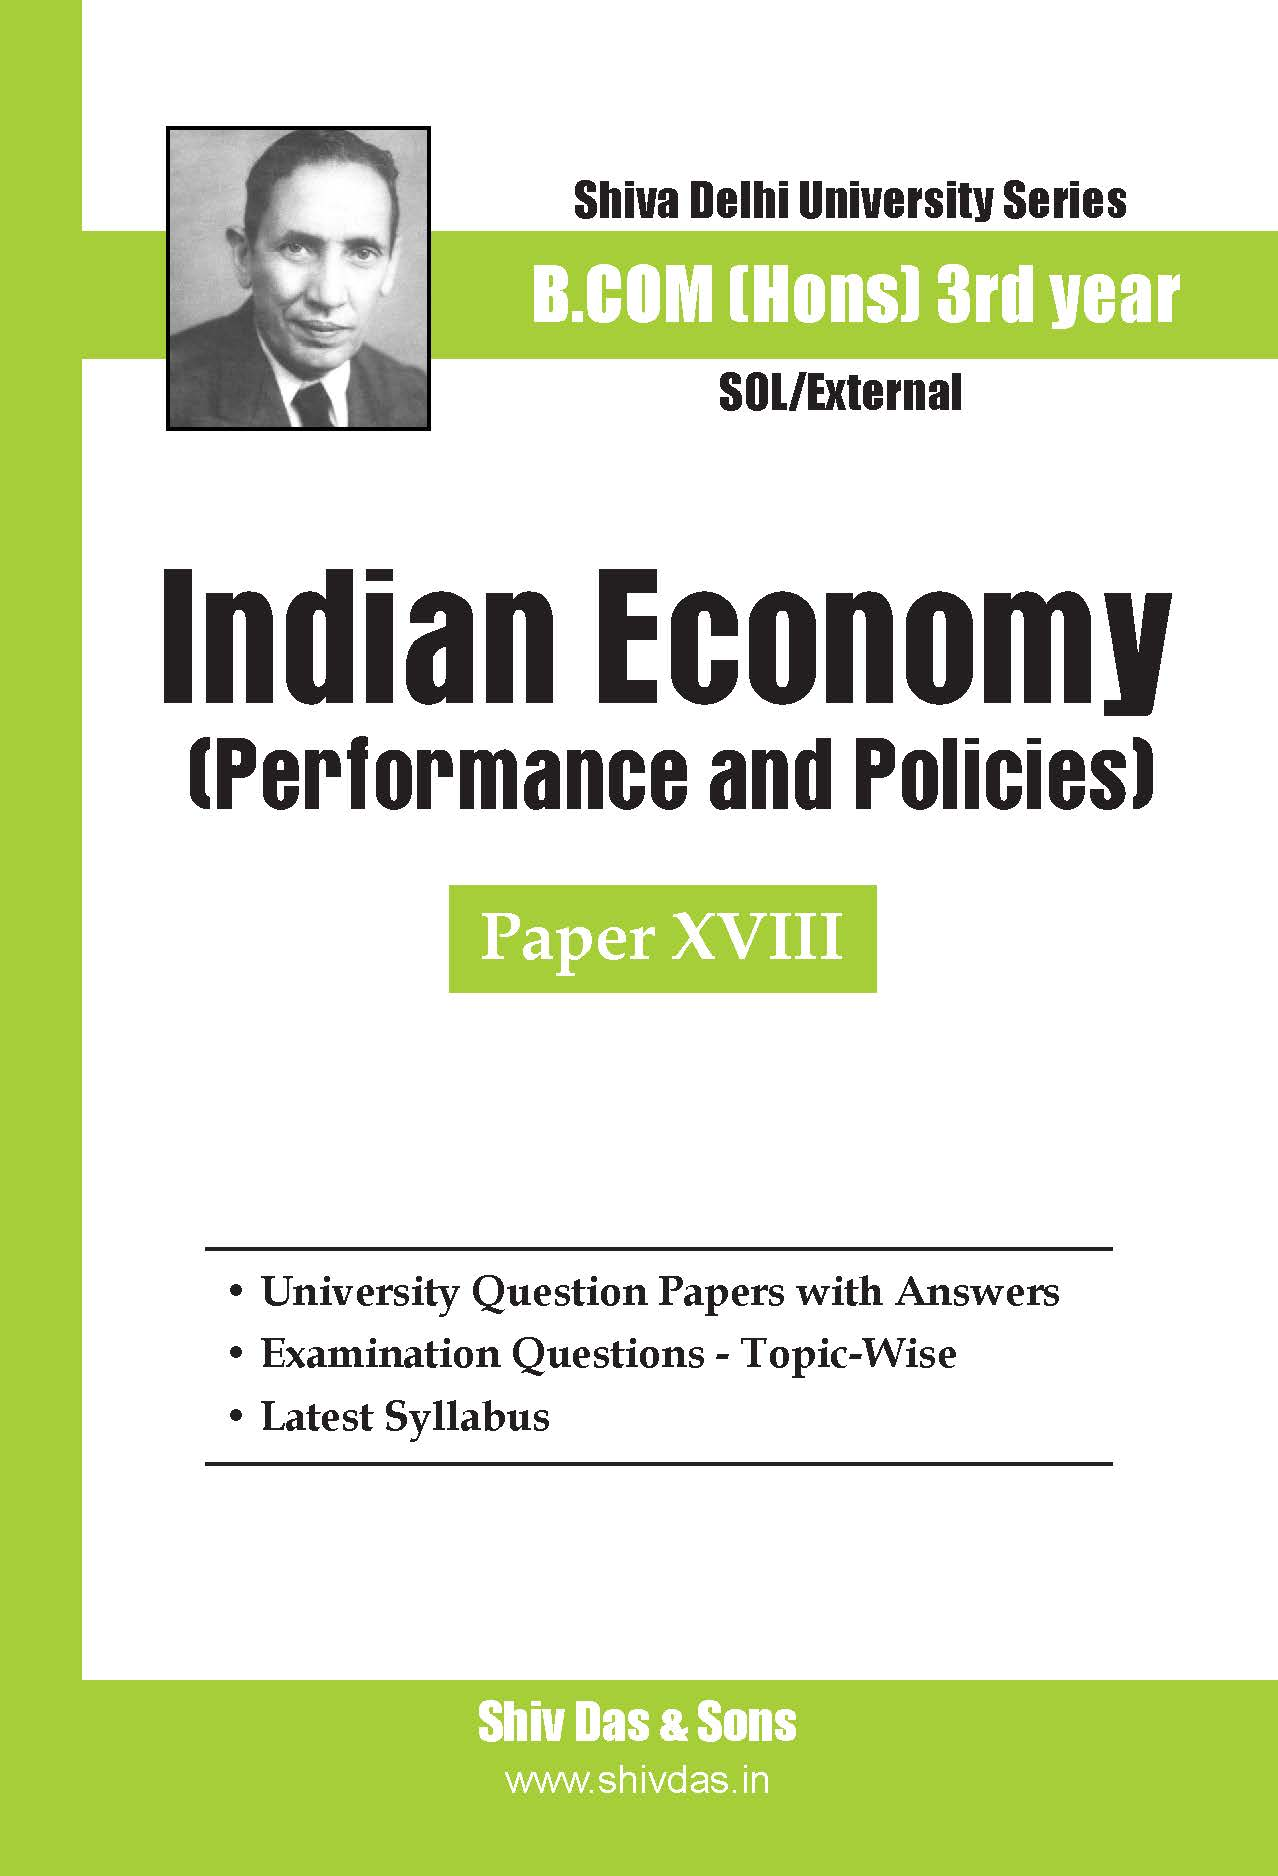 Indian Economy B.Com Hons SOL/External 3rd Year